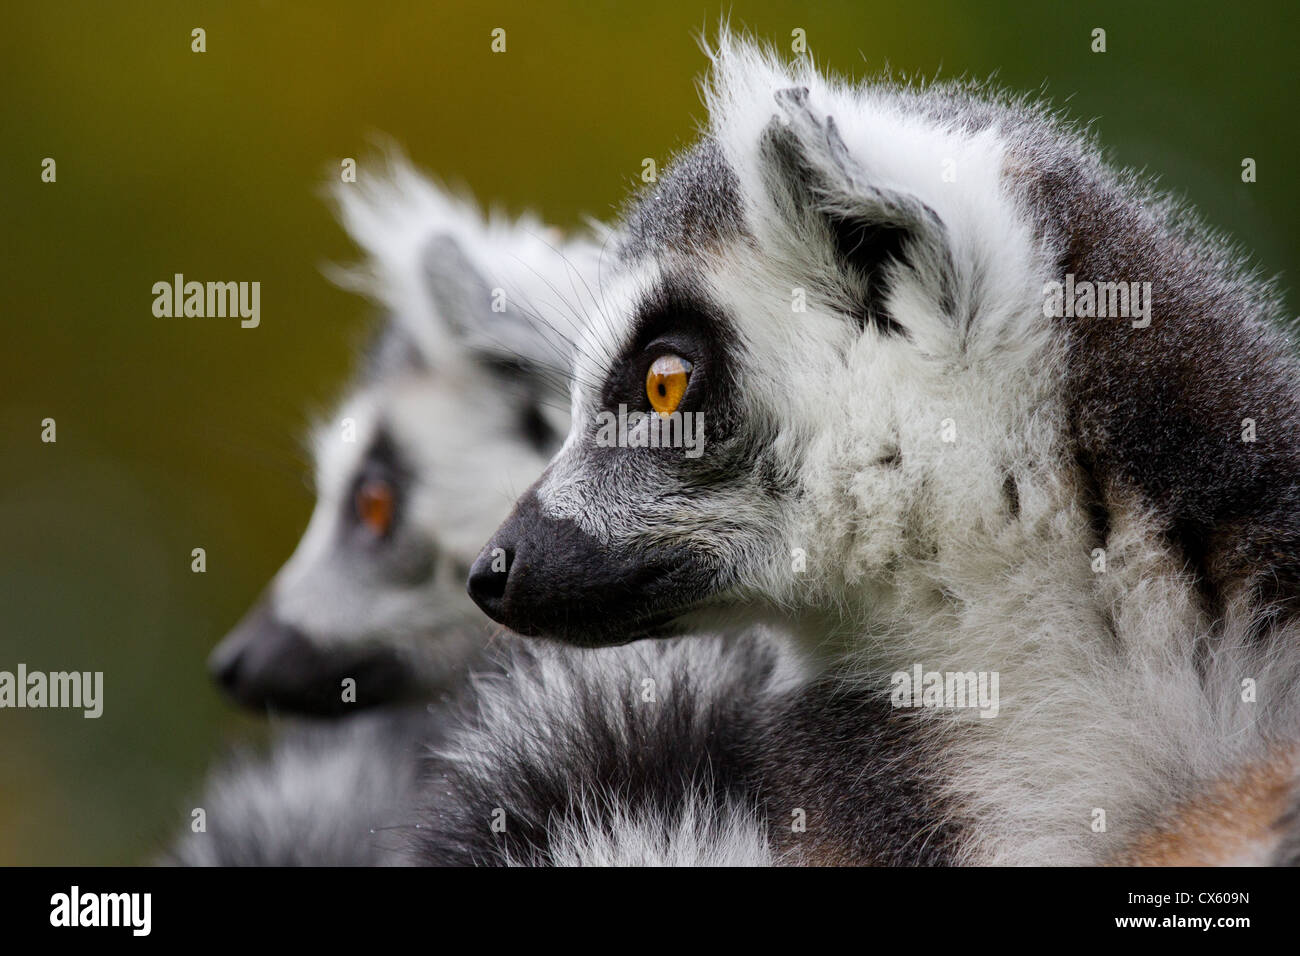 Two ring-tailed lemurs - Stock Image